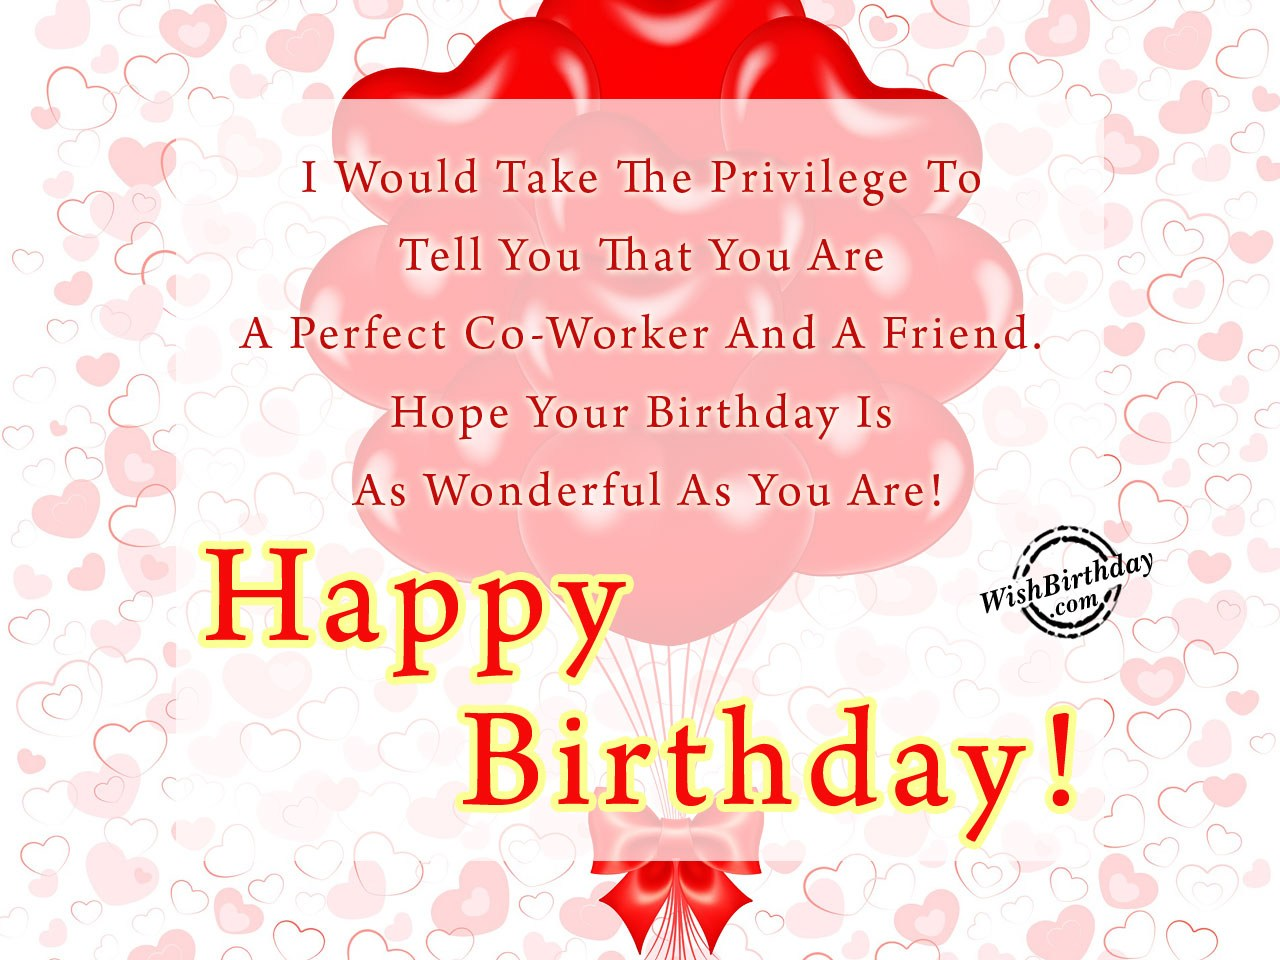 Birthday Wishes For Colleague - Birthday Images, Pictures